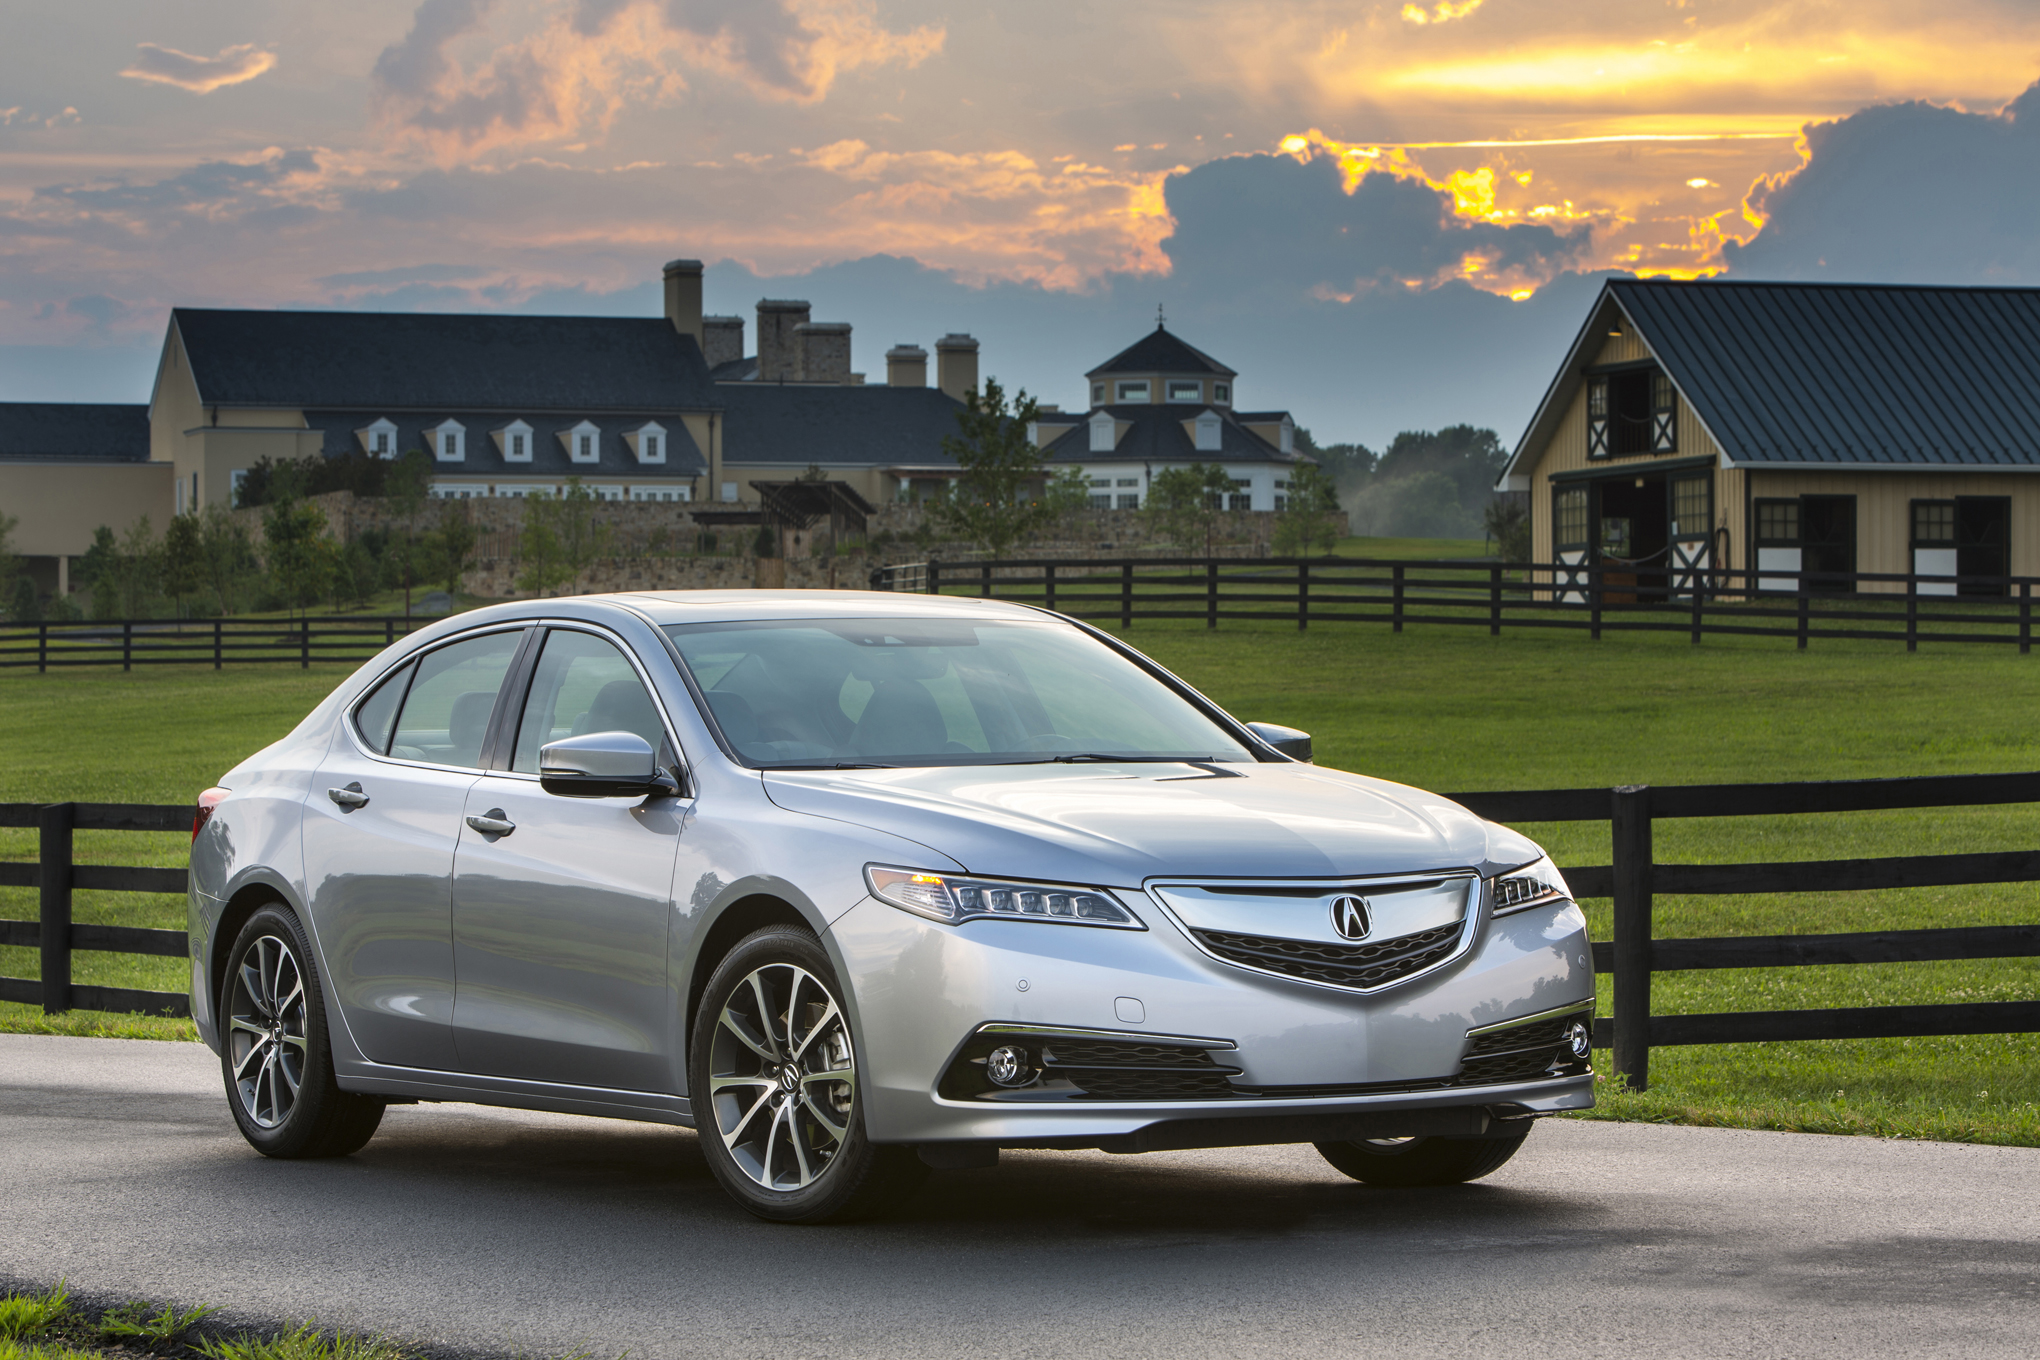 Cars With The Most North AmericanMade Parts Motor Trend - 2018 acura tl parts